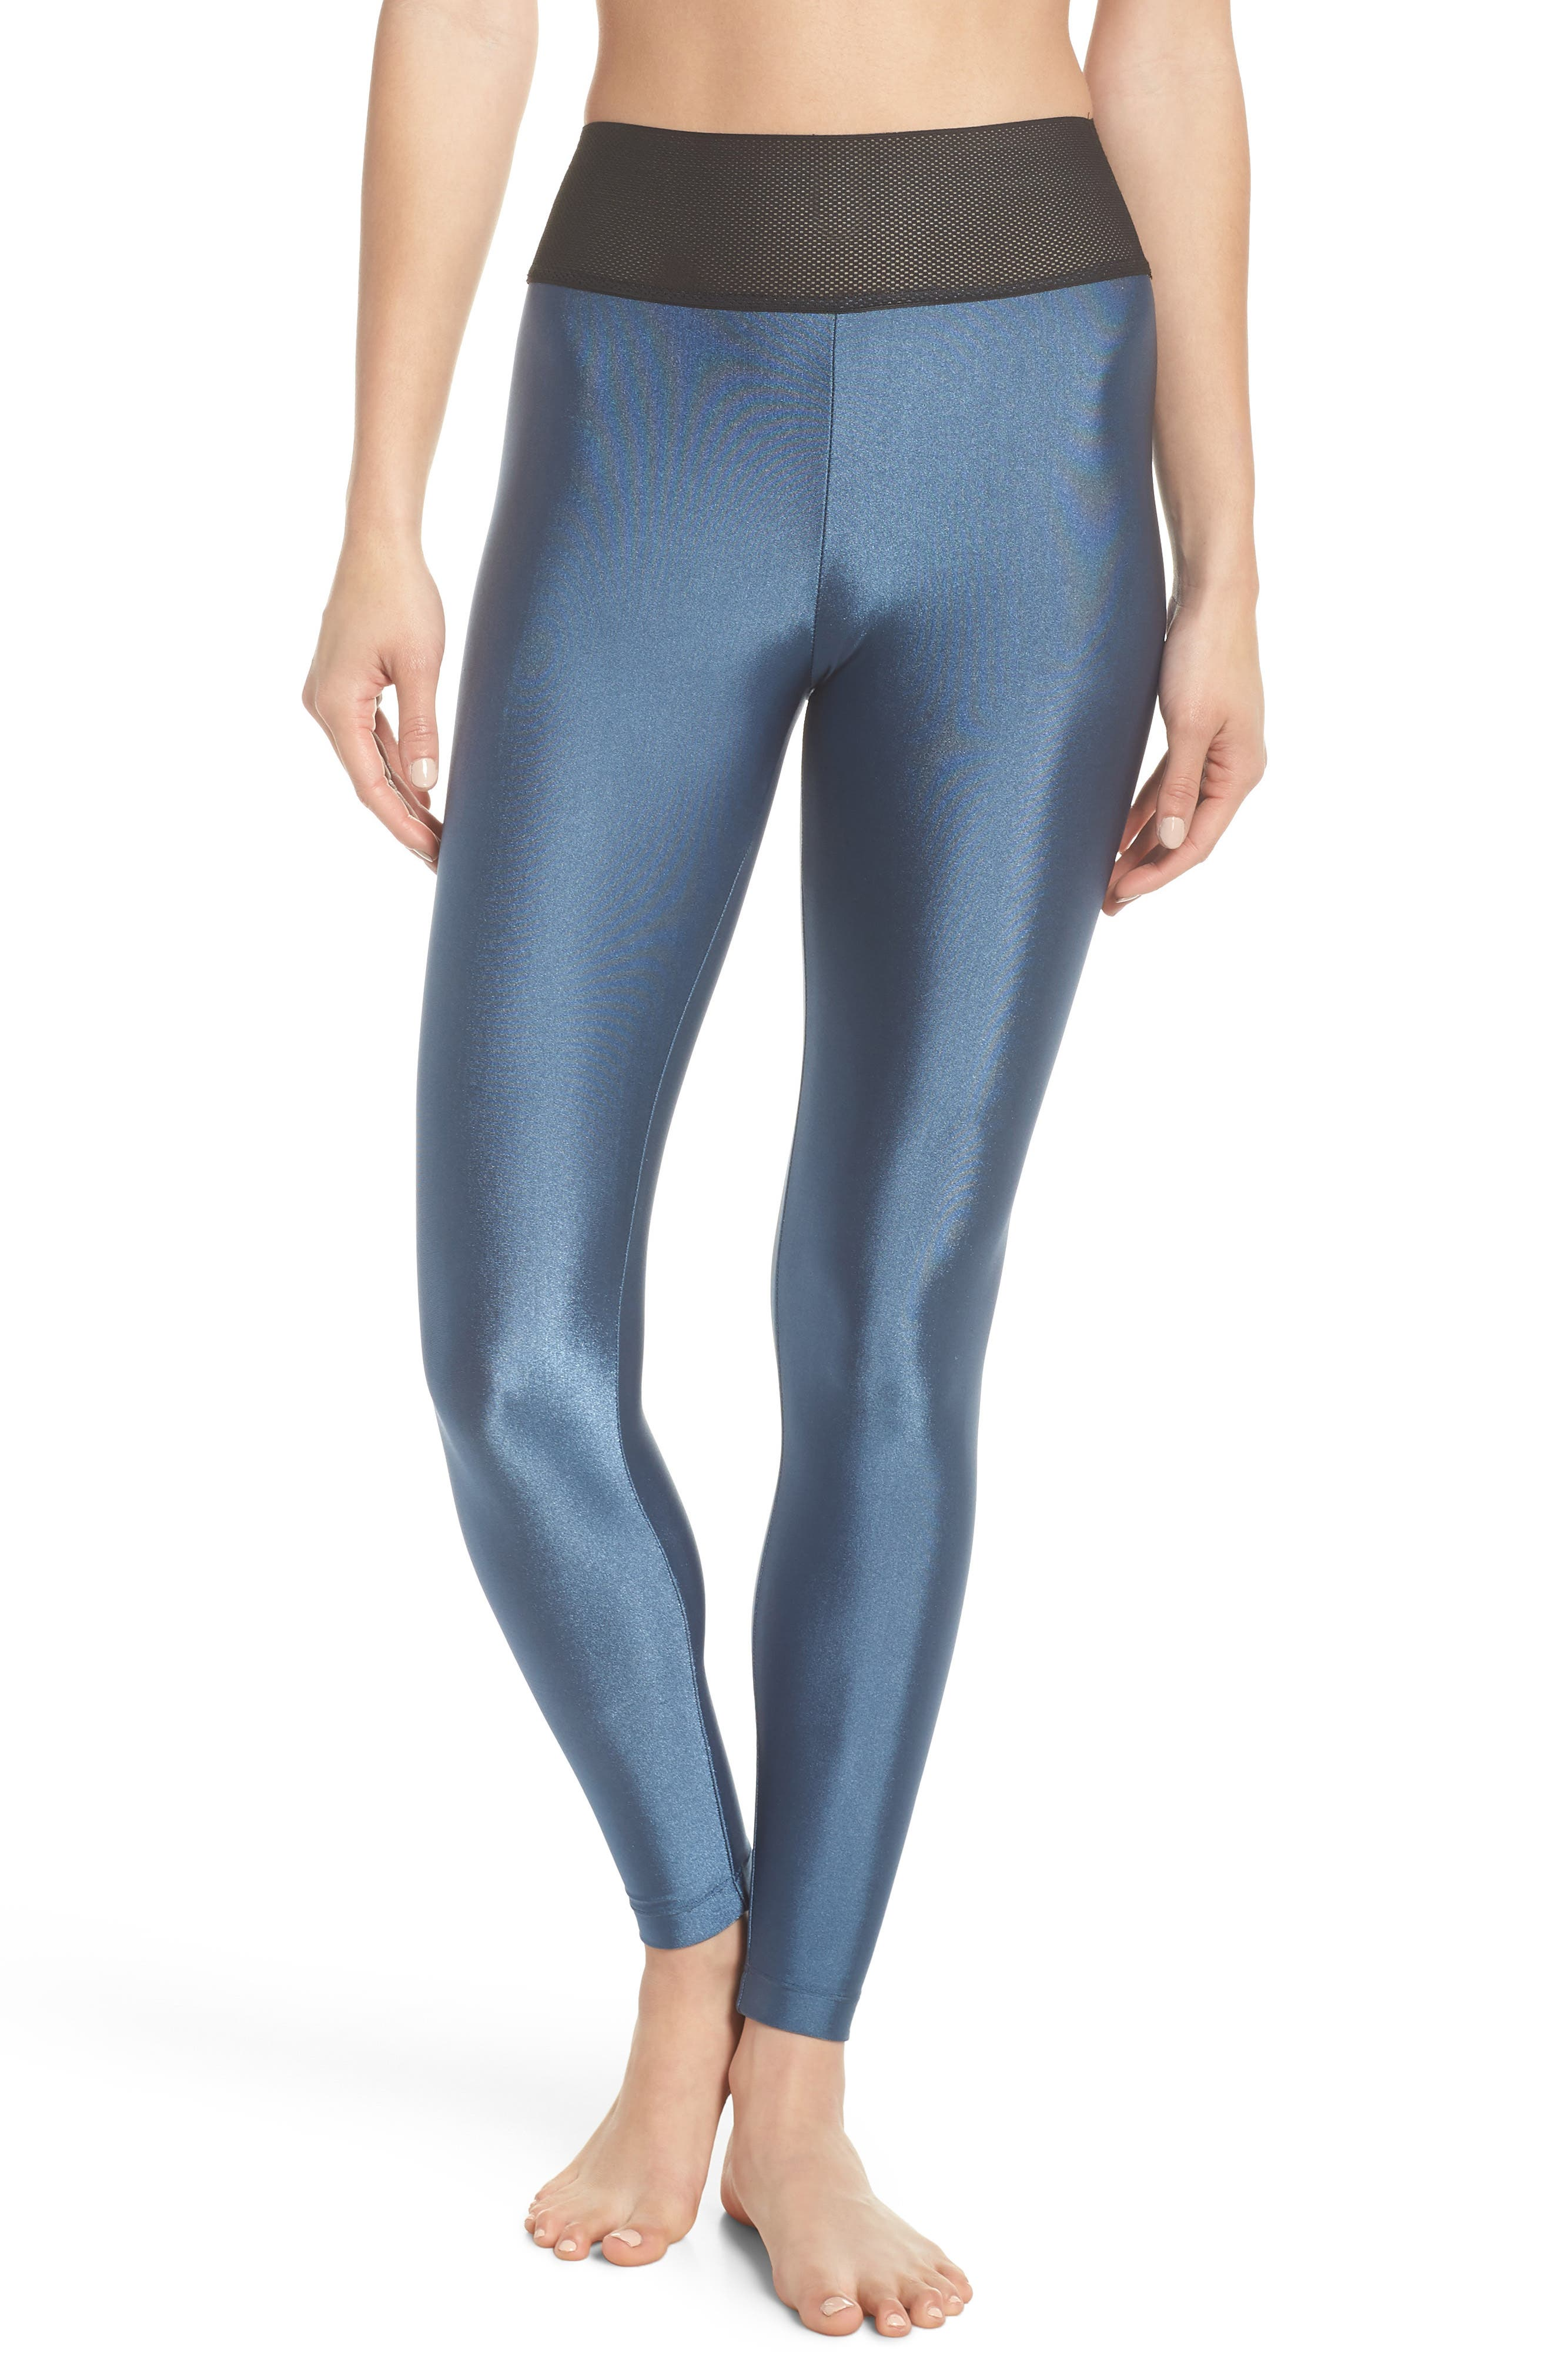 Sonar High Waist Leggings by Koral